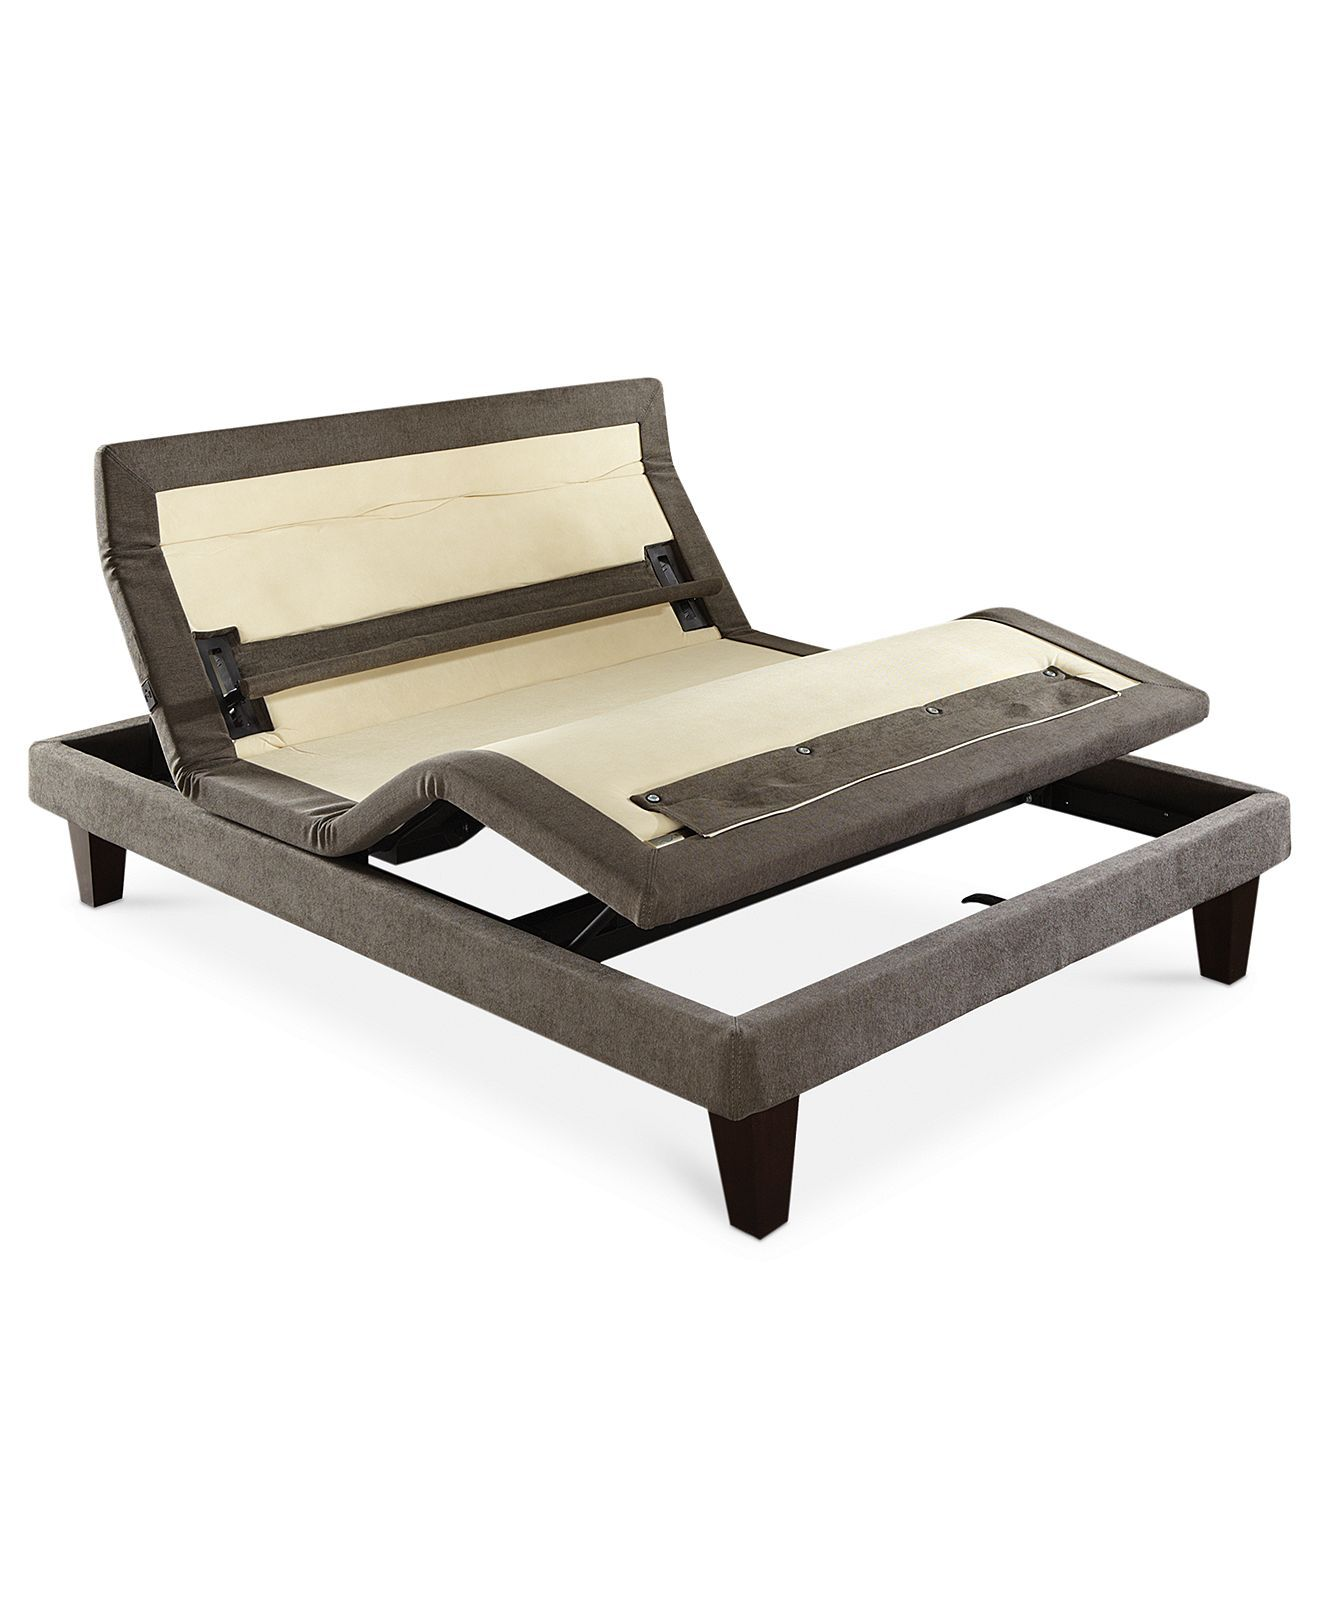 I Want This For My Icomfort Mattress So Bad Adjustable Base With A Built In Massager Adjustable Bed Frame Adjustable Bed Mattress Adjustable Beds